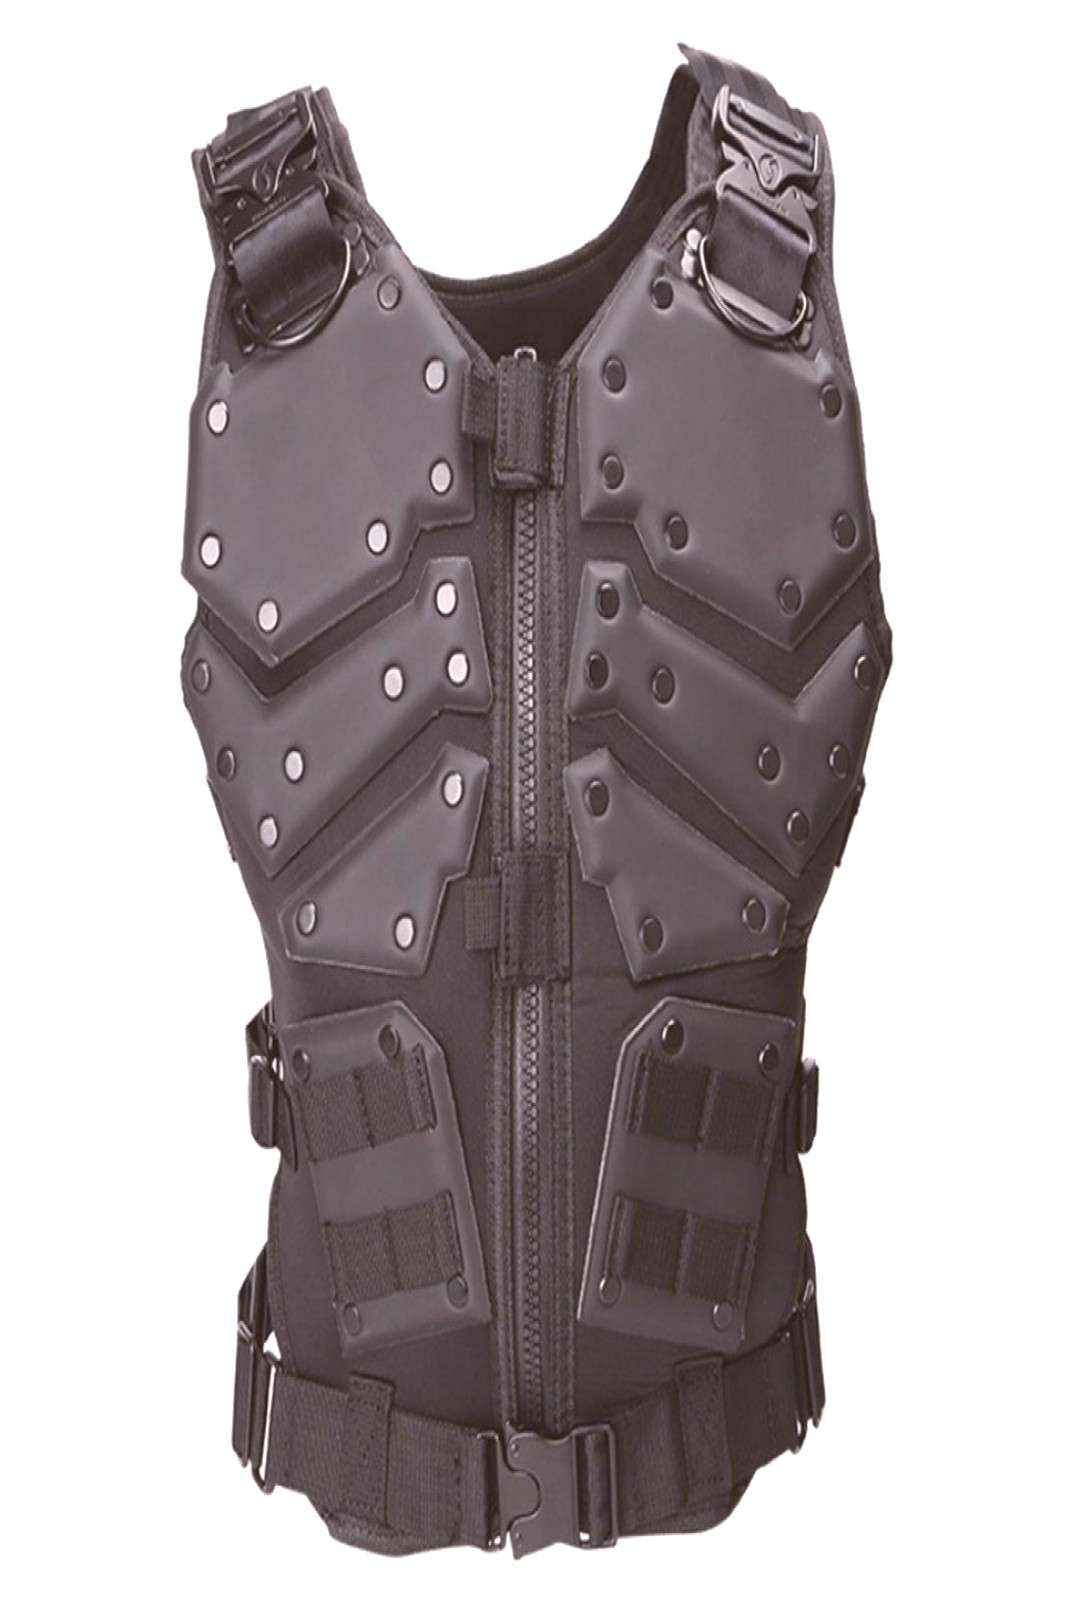 TF3 Special Forces Tactical Vest Airsoft Body Armor - Highly replica the original tactical militar